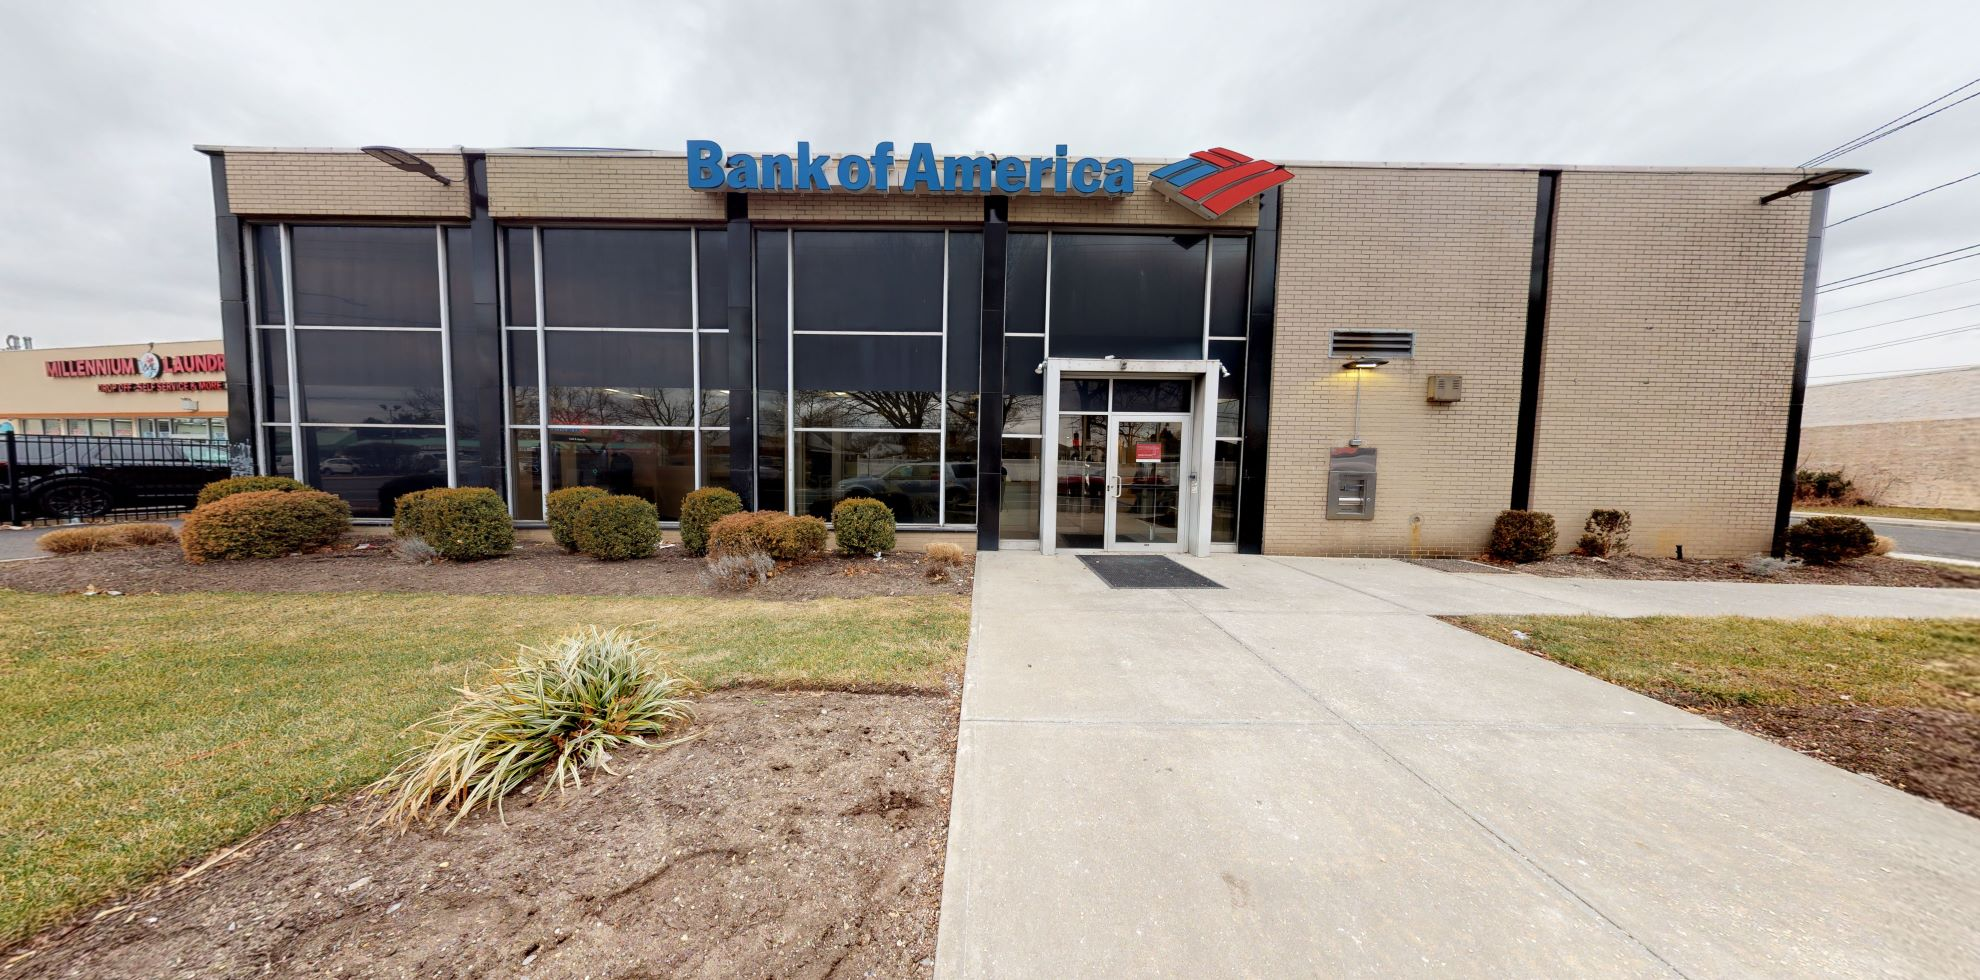 Bank of America financial center with drive-thru ATM | 1150 Grand Ave, South Hempstead, NY 11550